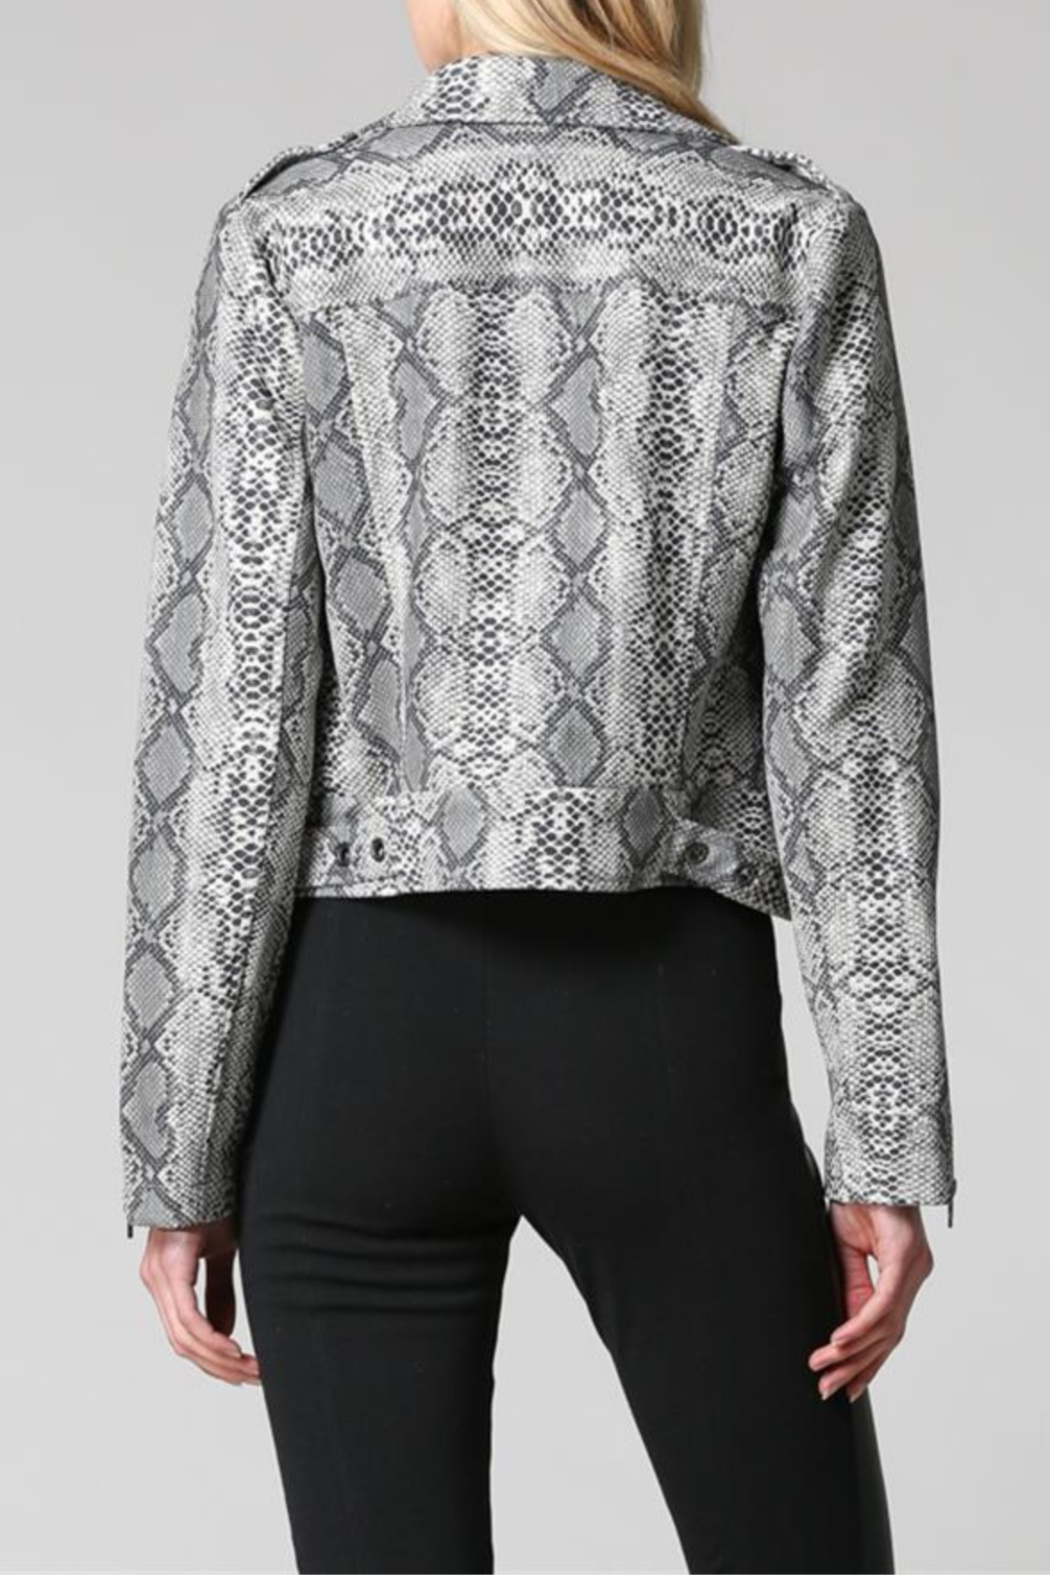 FATE by LFD Snake Print Sueded Moto Jacket - Main Image